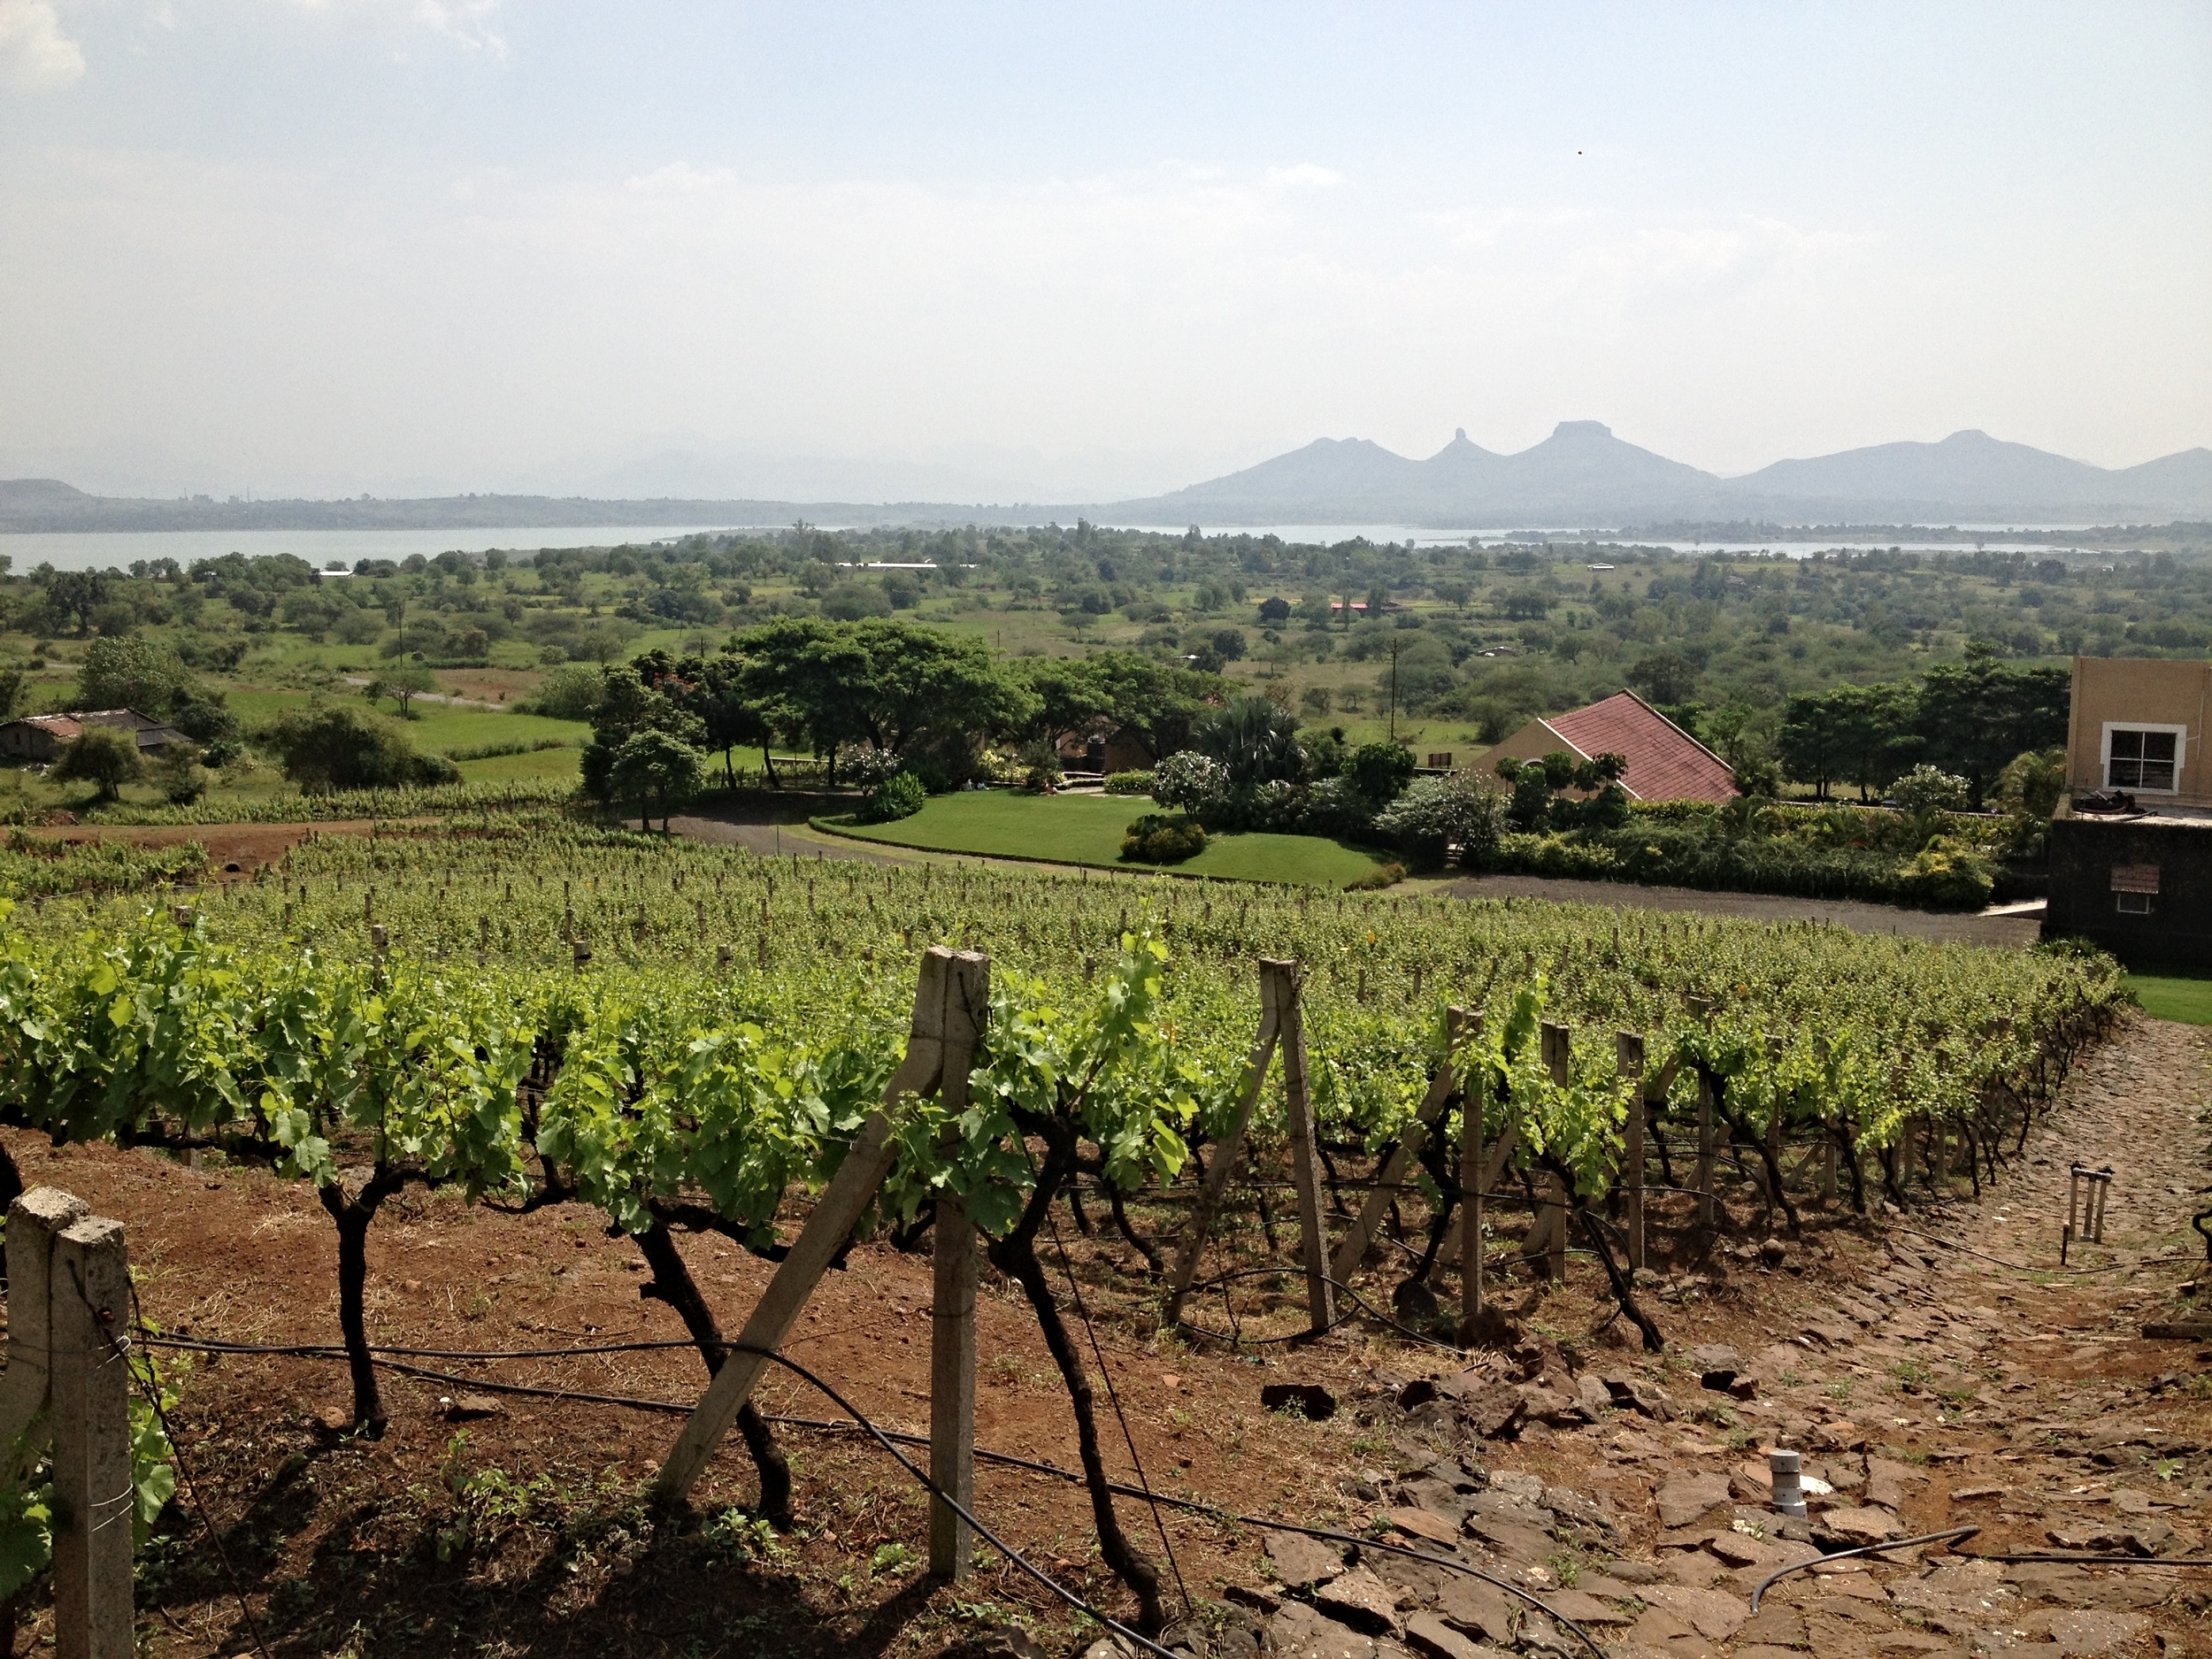 View from Grover Zampa's vineyard